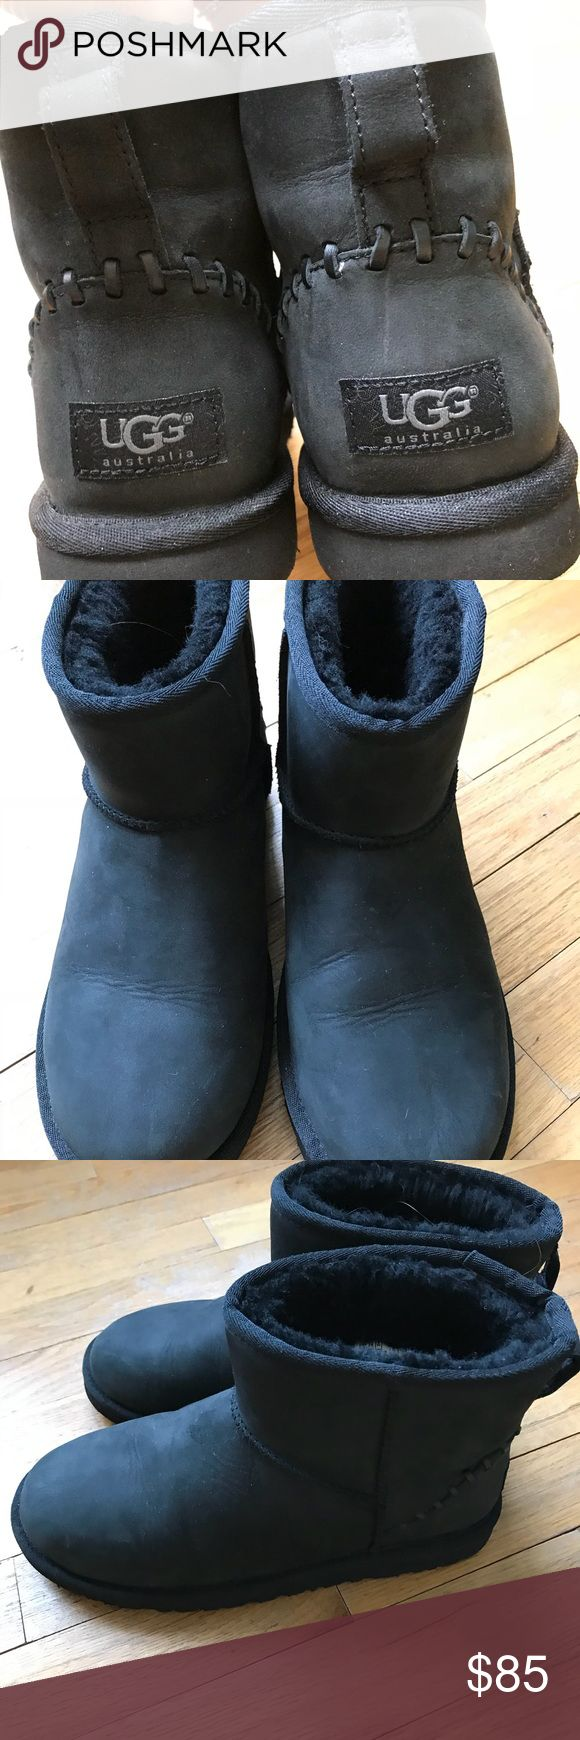 Ugg mini boot- kids size 6/ women's 8 Black ugg mini boot in excellent condition.  Fits a women's 8.  Cute stitching detail in the back. UGG Shoes Winter & Rain Boots